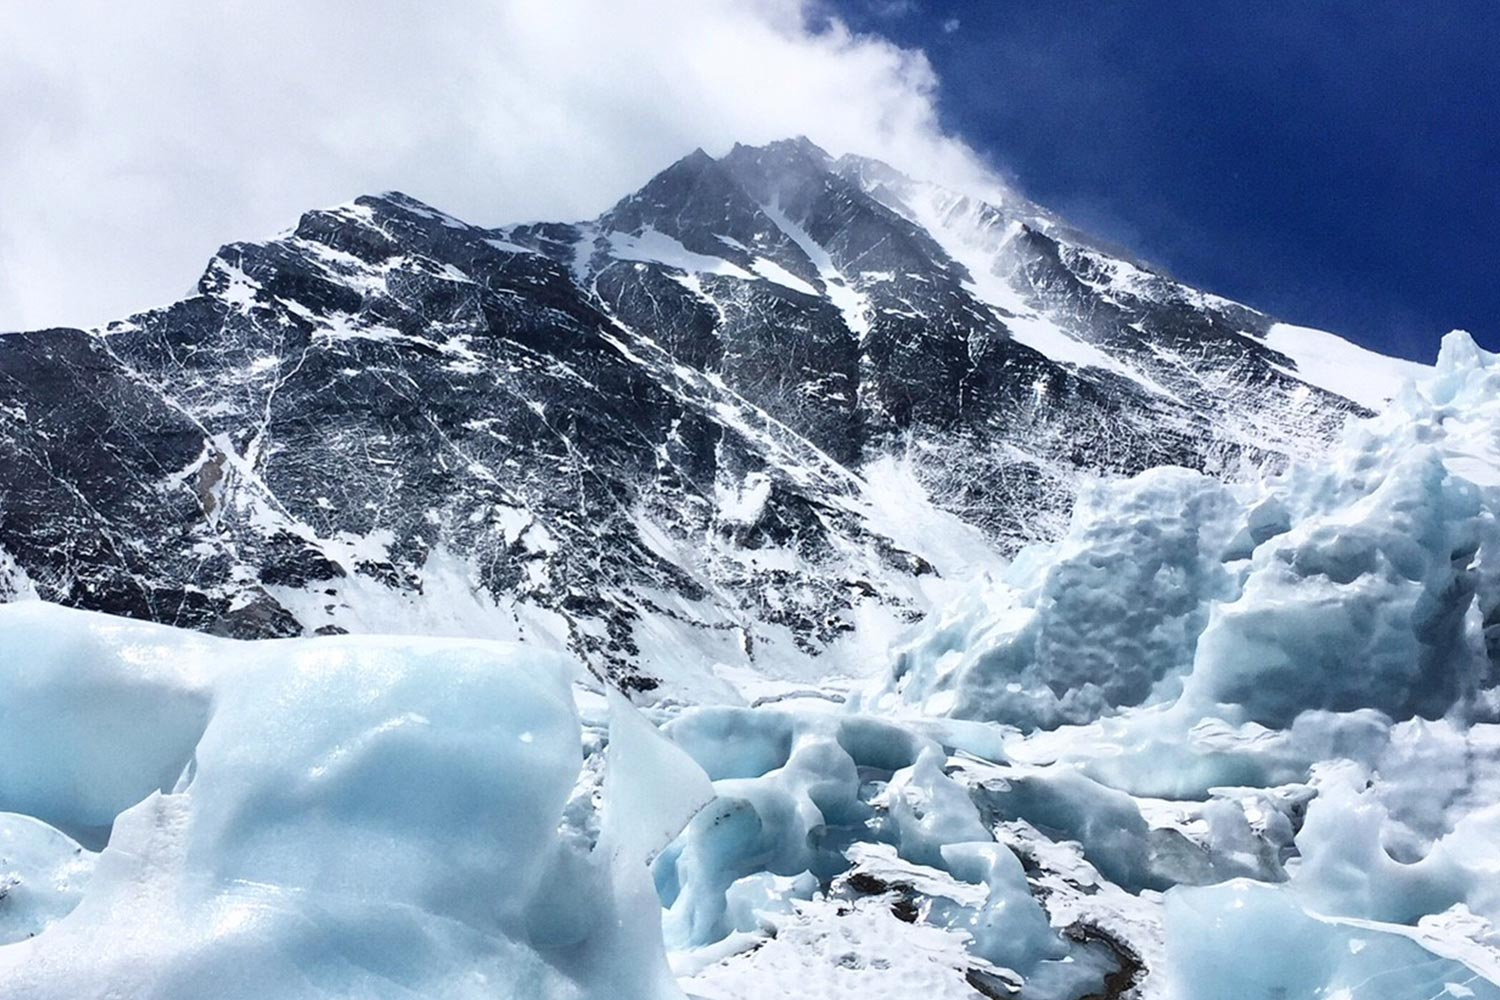 Daytime view depicting the conditions on Mt. Everest. Photo by Mang Lin